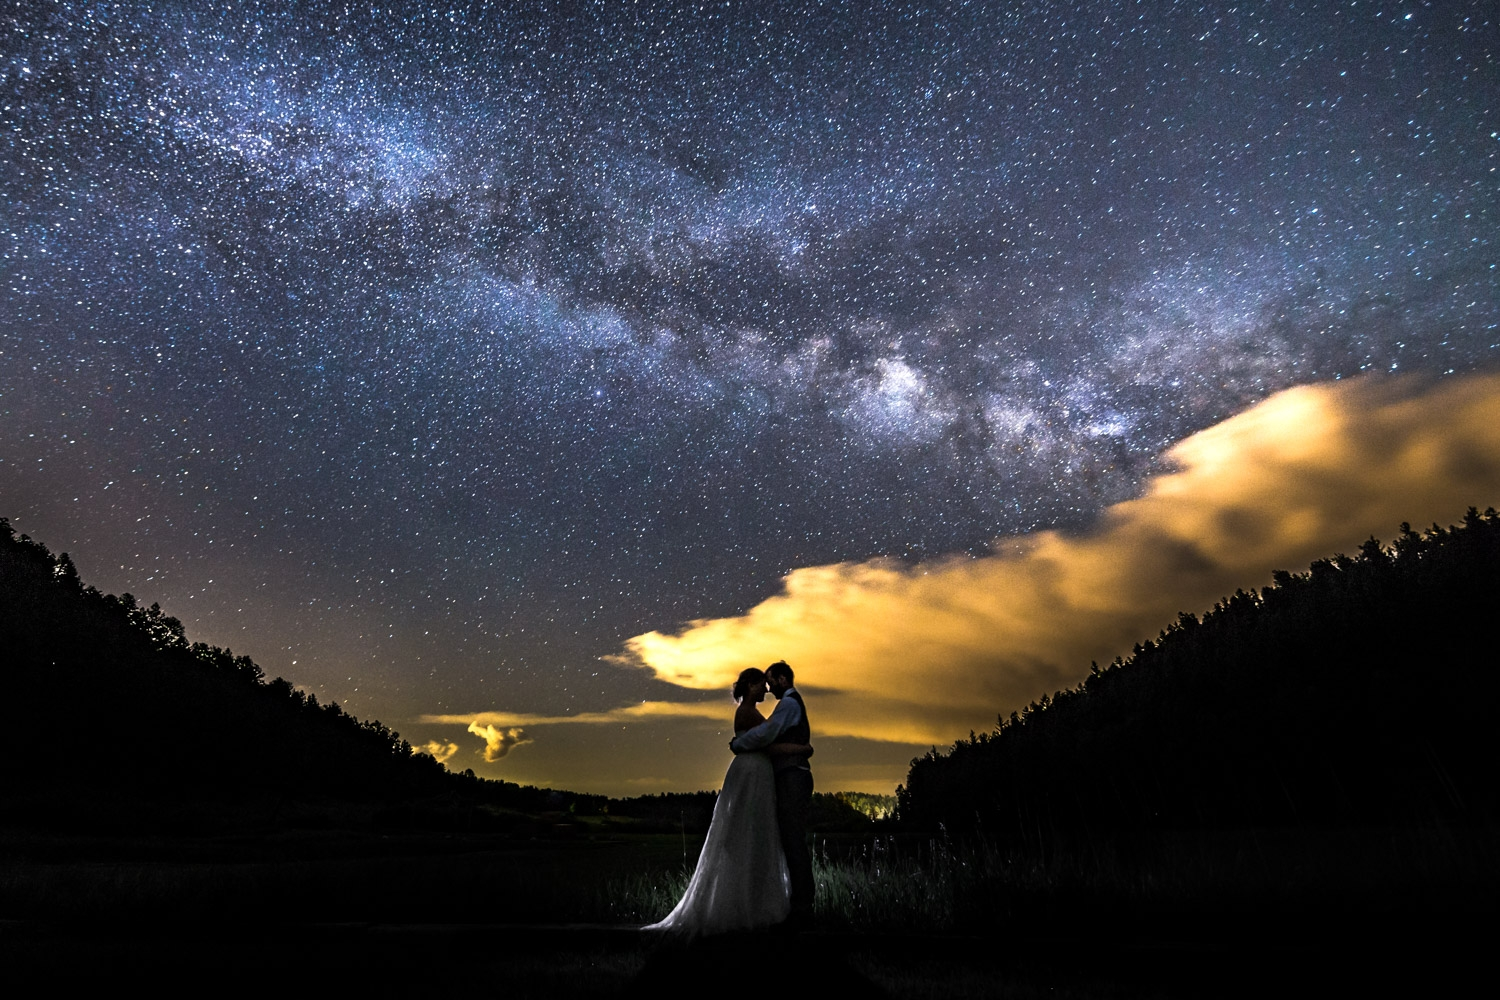 Astro picture, milk way, bride and groom, wedding portrait by JMGant Photography.